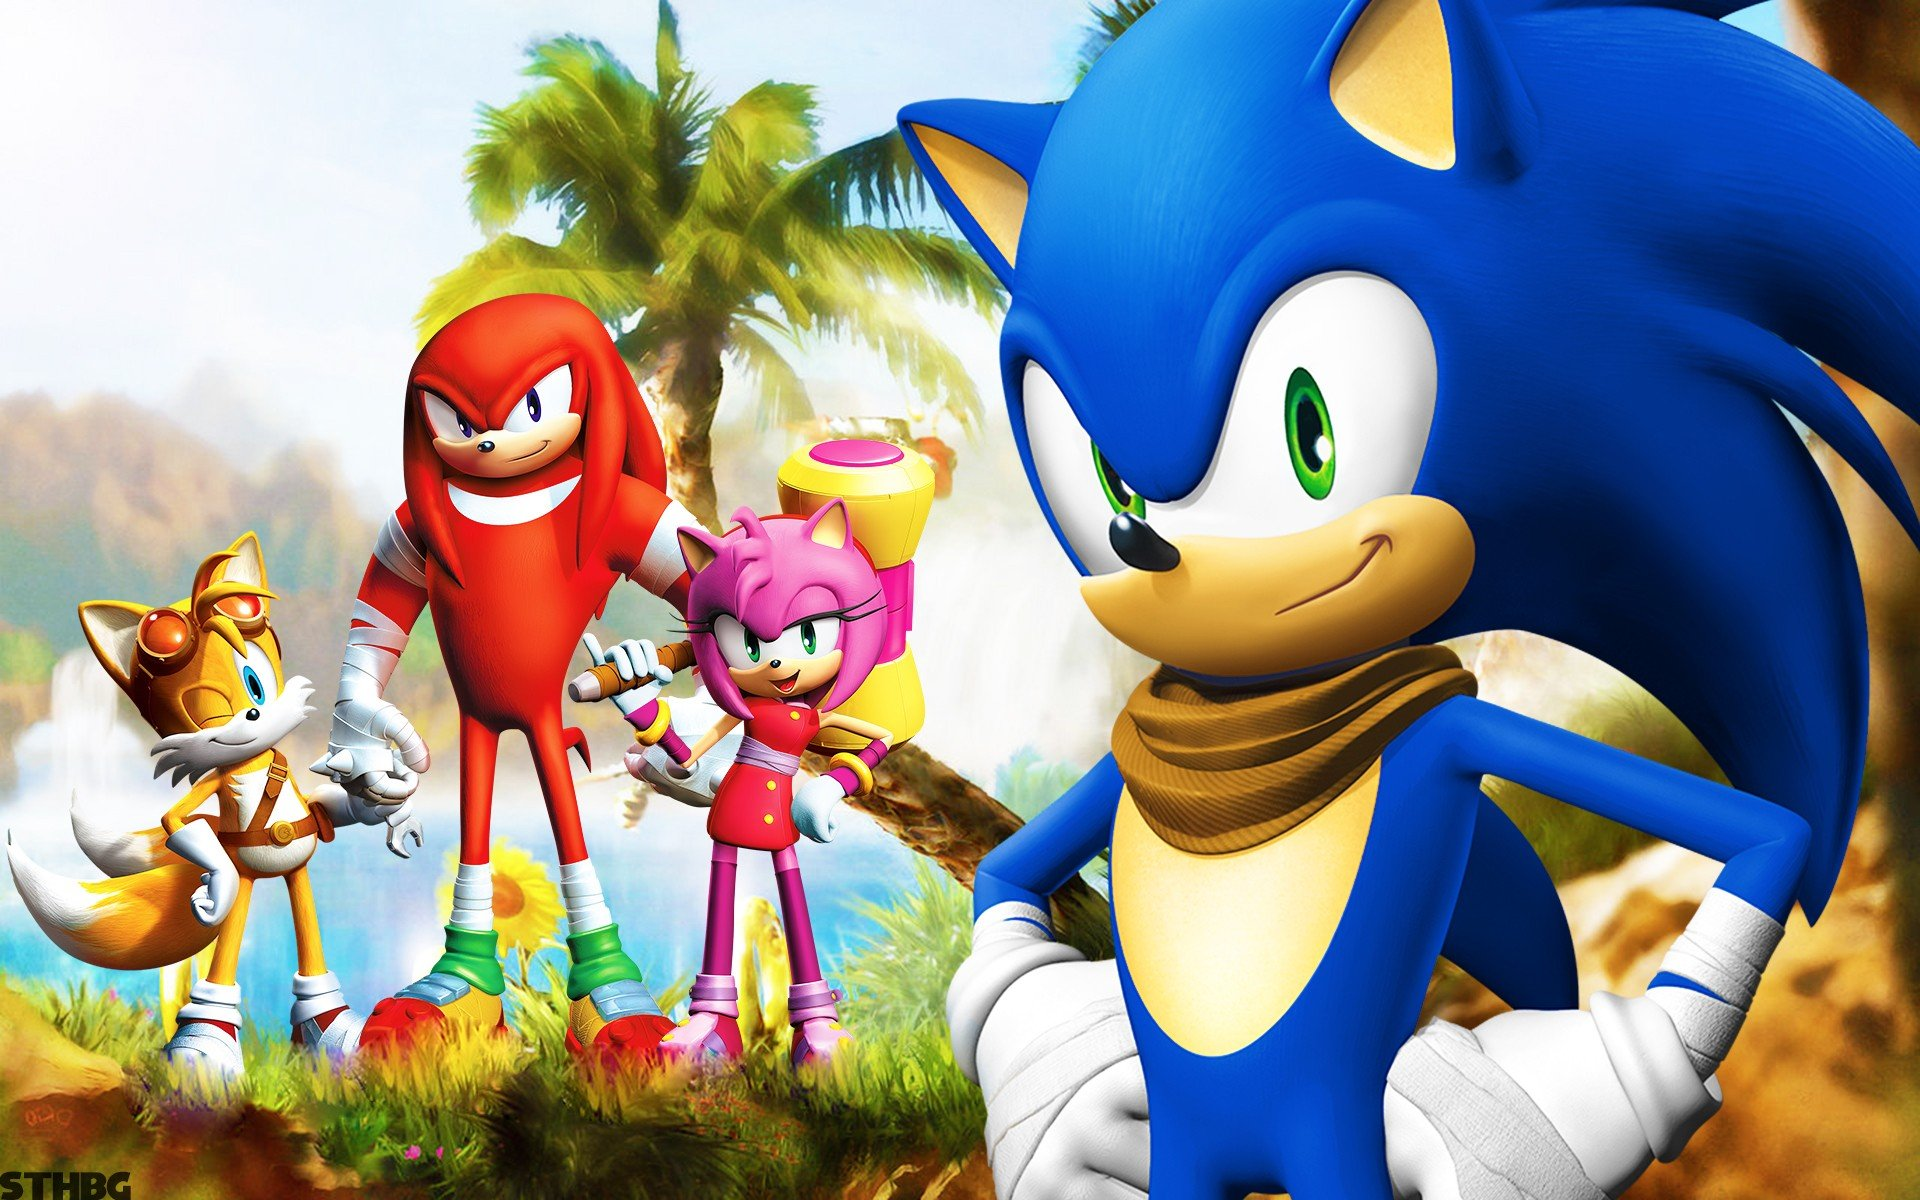 Sega Games Hedgehog Tails (character), Sonic, Sonic The Hedgehog, Sonic Boom